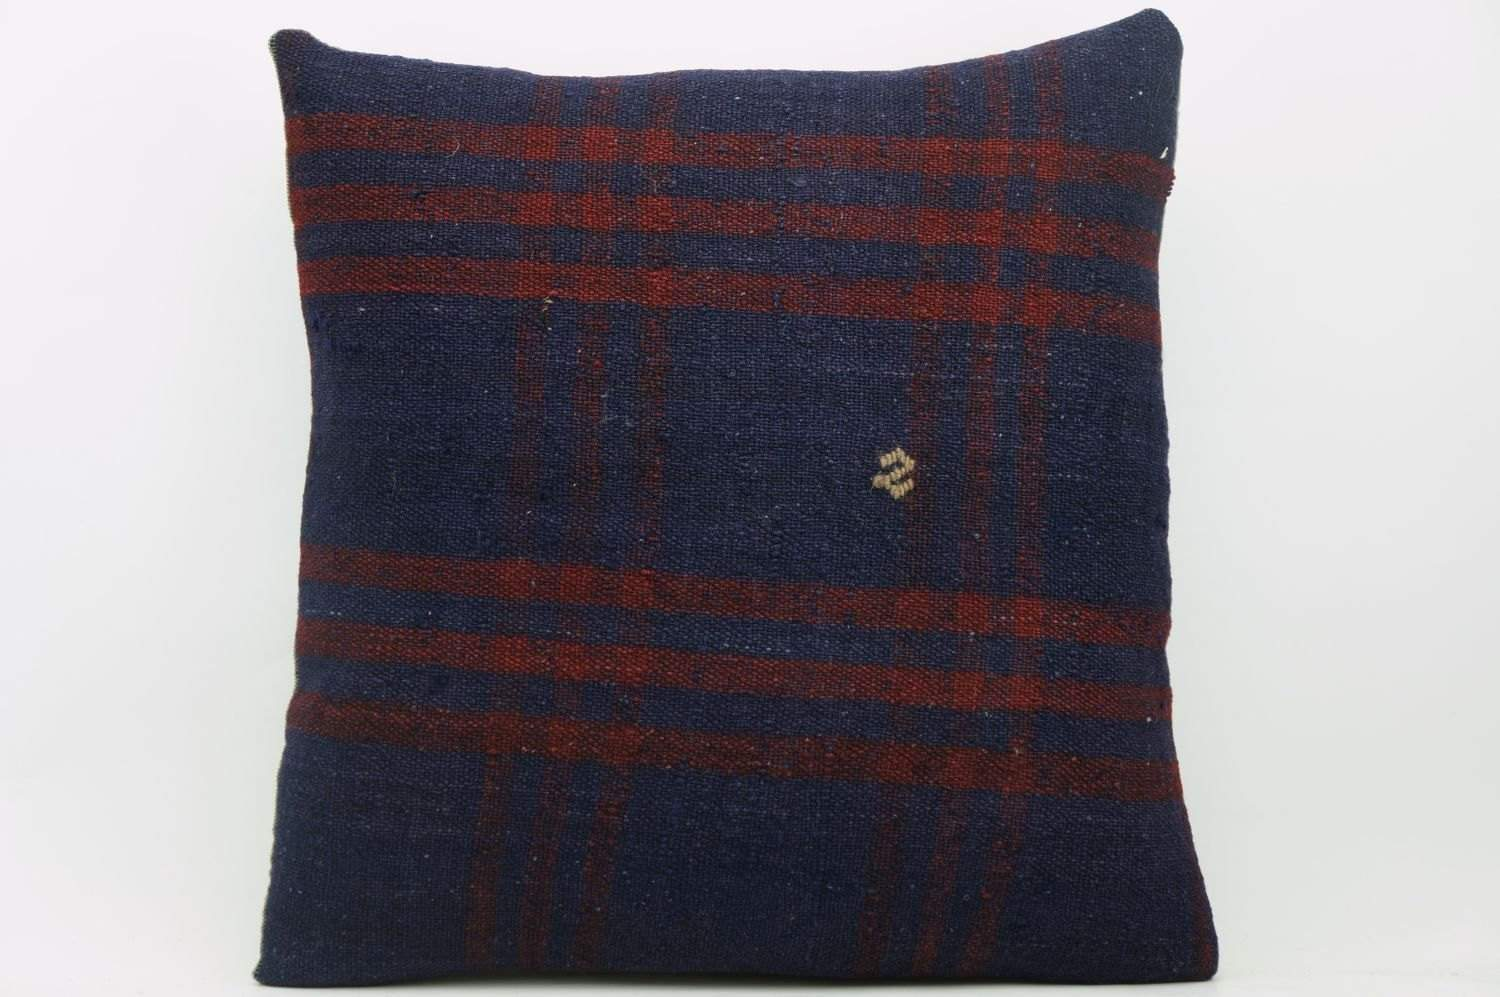 CLEARANCE 16x16  Hand Woven wool green black plaid  Kilim Pillow  cushion 1082_A Wool pillow cover,navy blue,claret red - kilimpillowstore  - 1